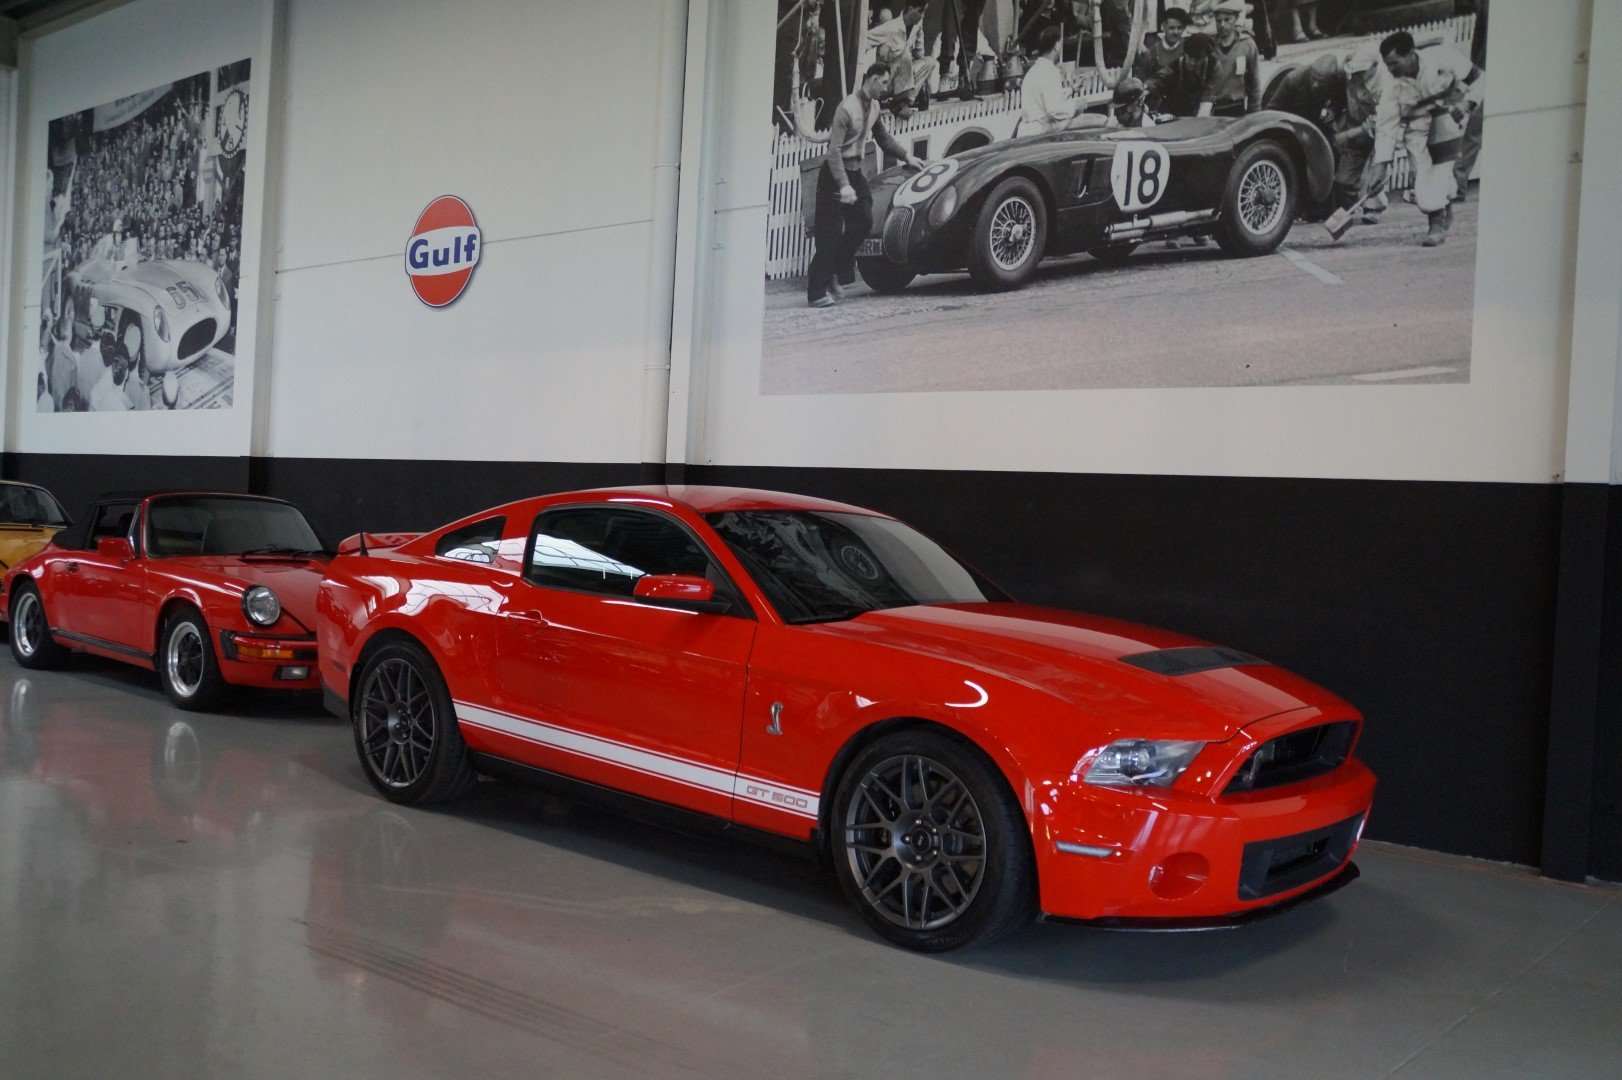 FORD MUSTANG Shelby GT500 SVT Performance Package (2011) For Sale (picture 1 of 6)